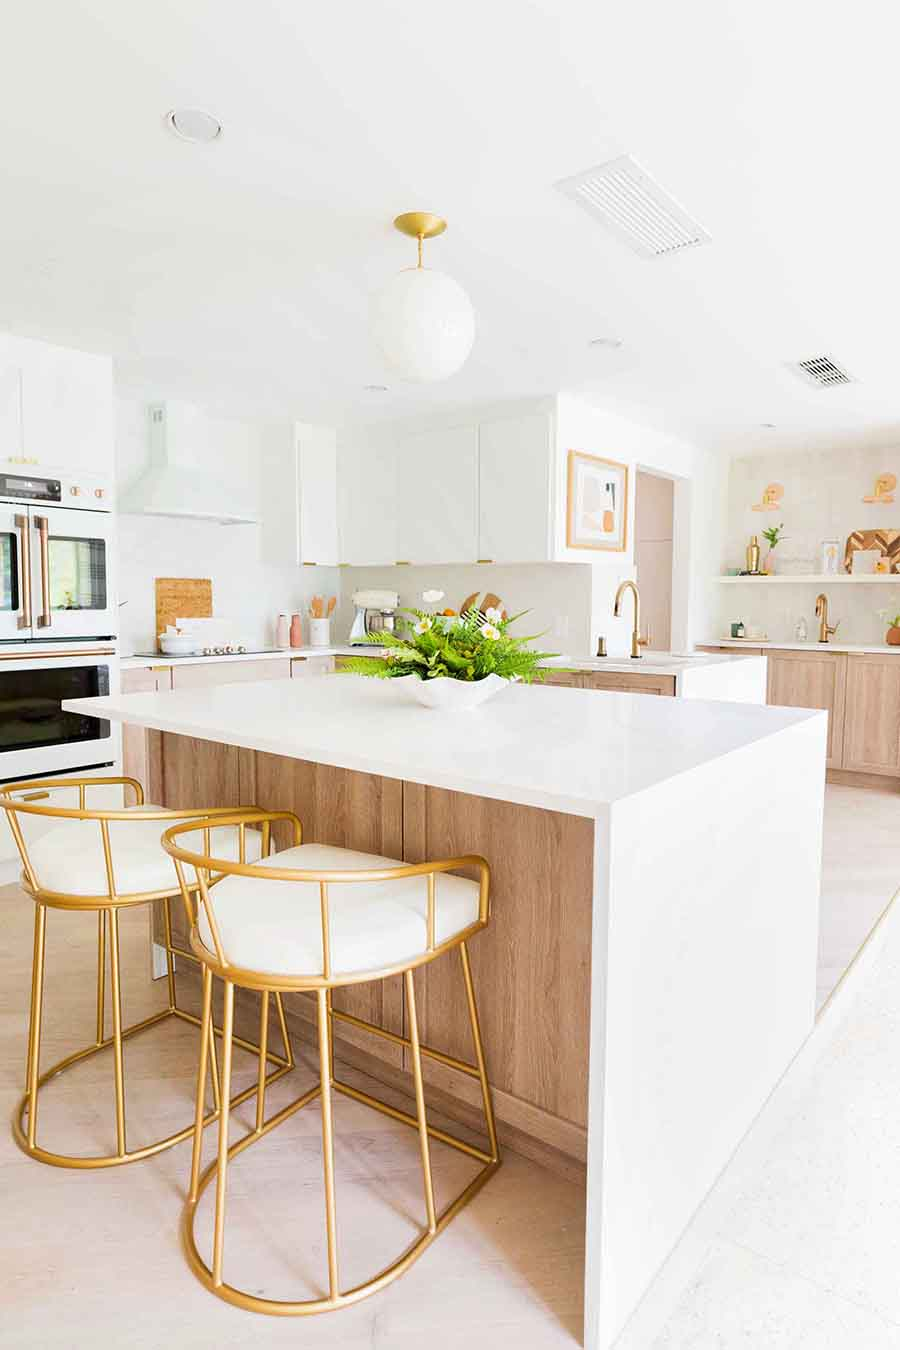 sugar and cloth kitchen - how to decorate according to your star sign - leo